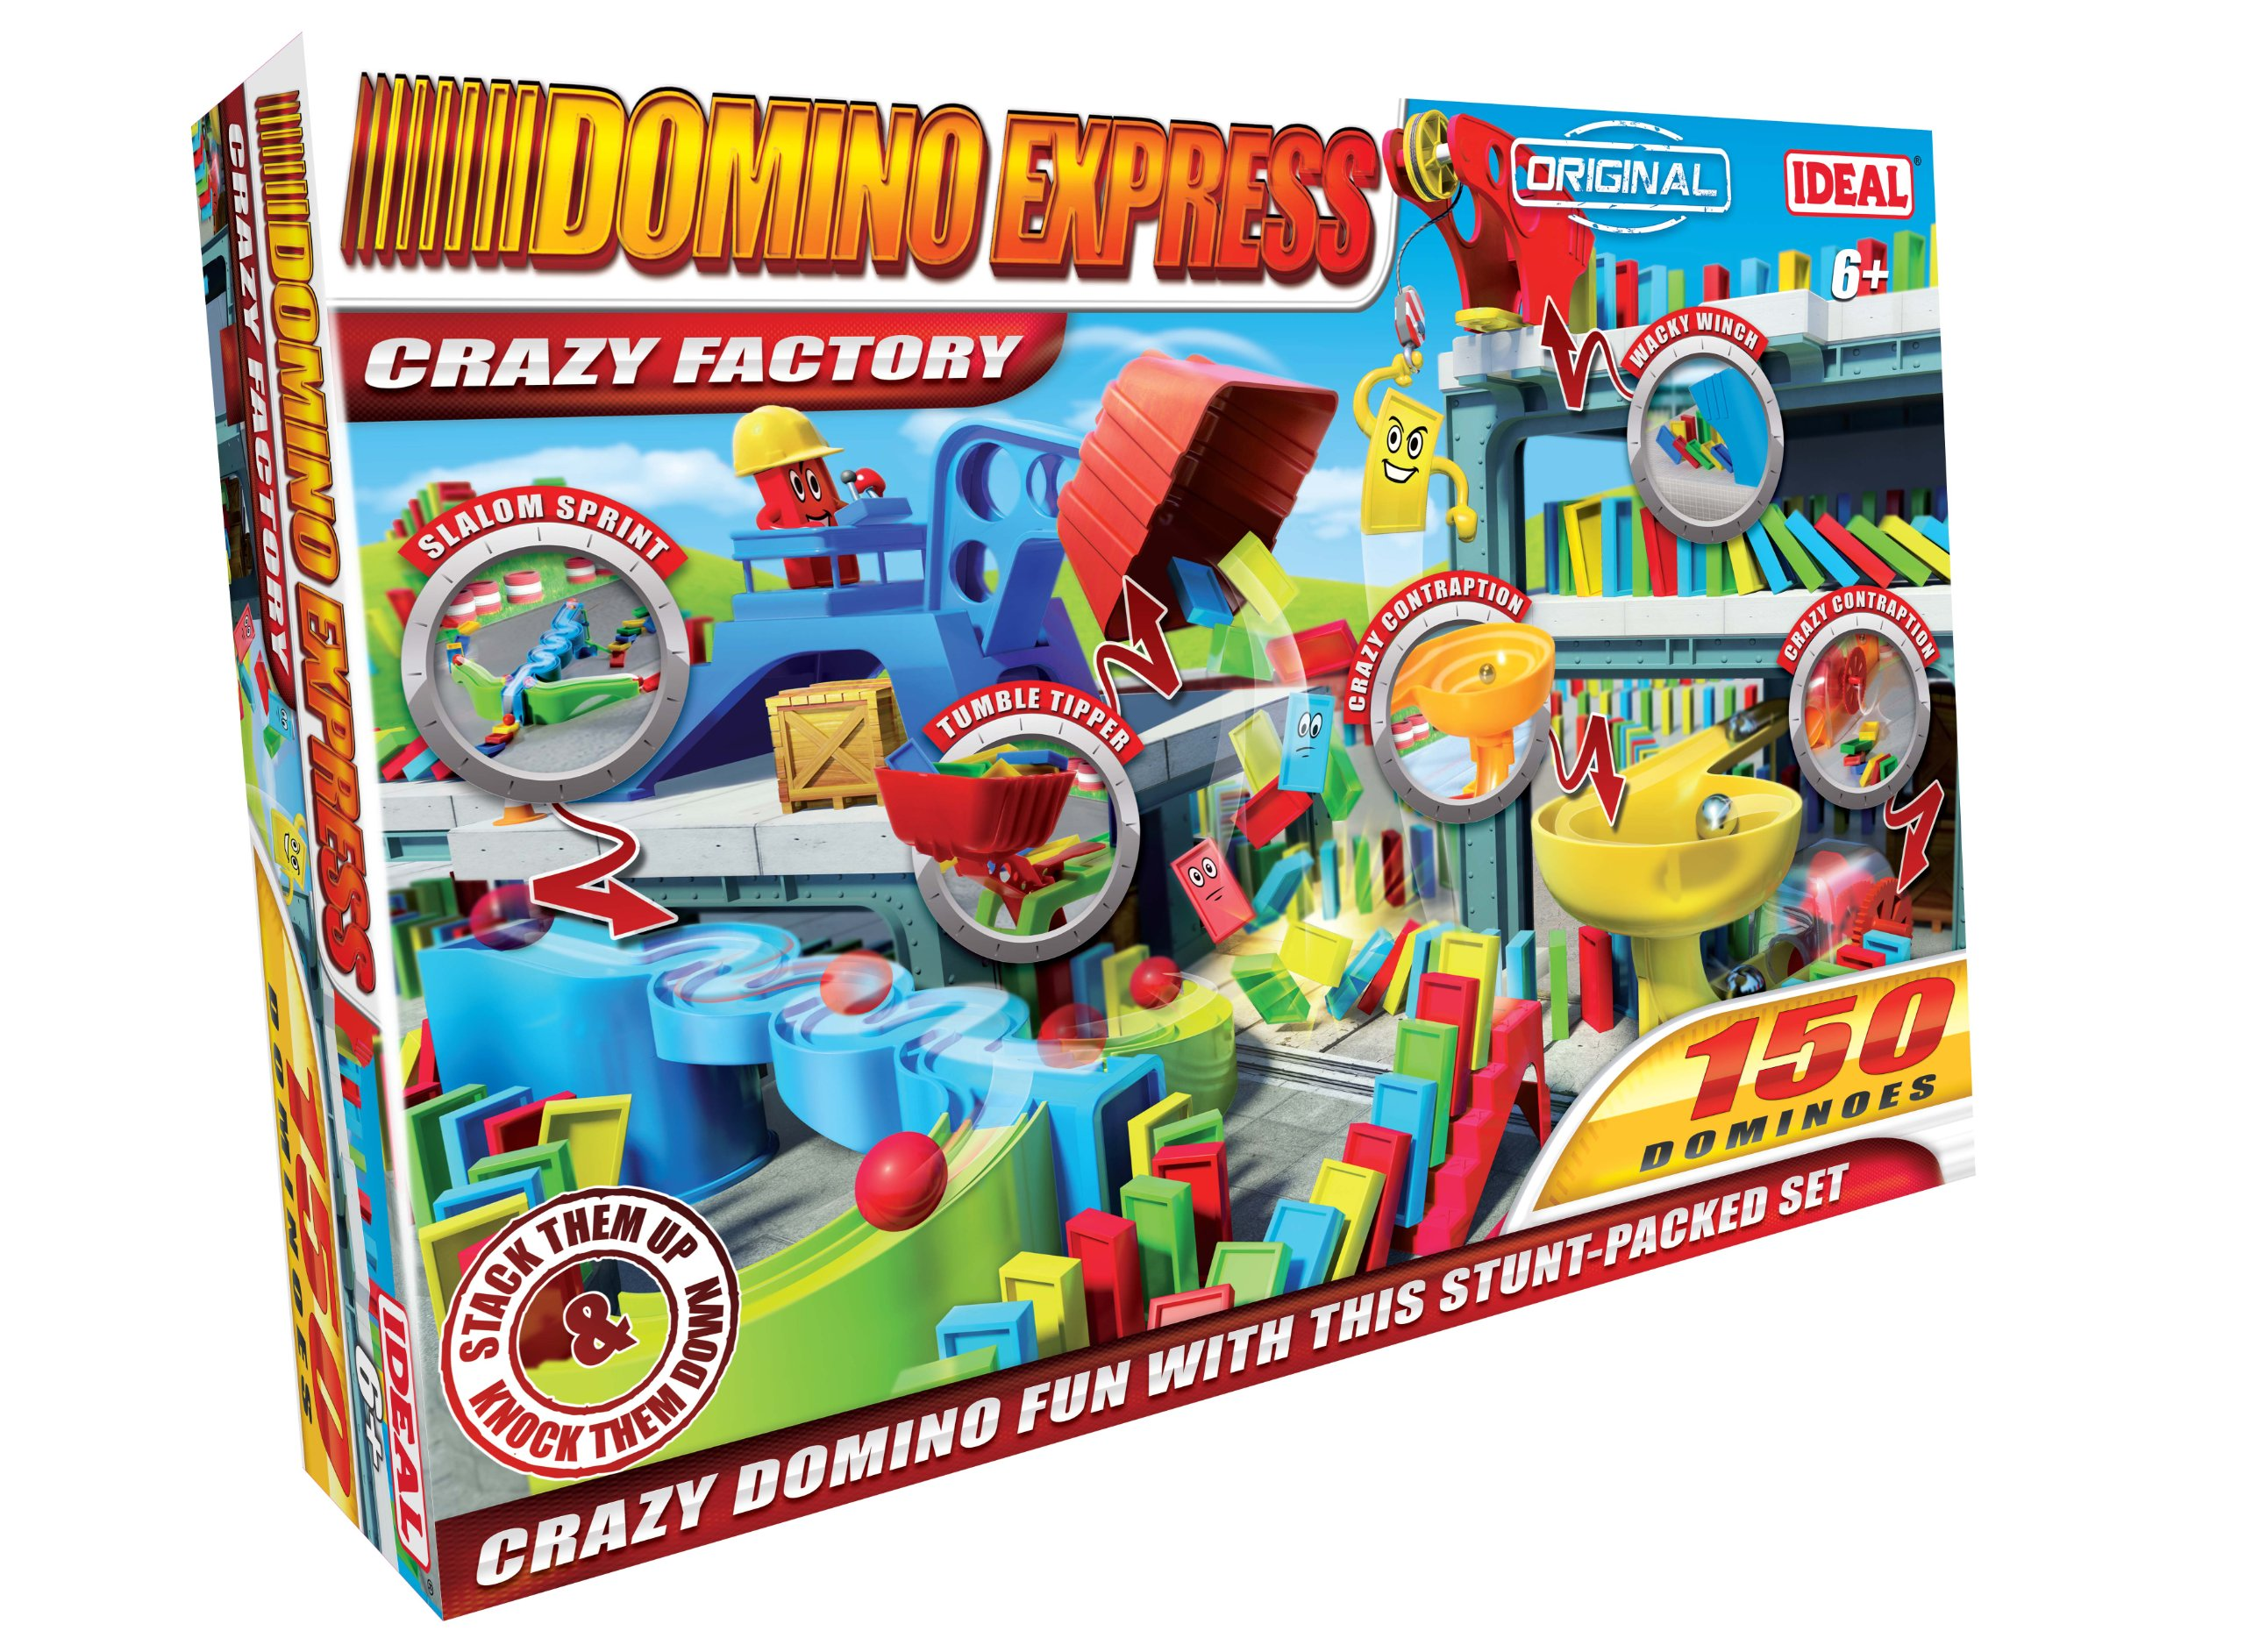 Domino Express Crazy Factory by Ideal